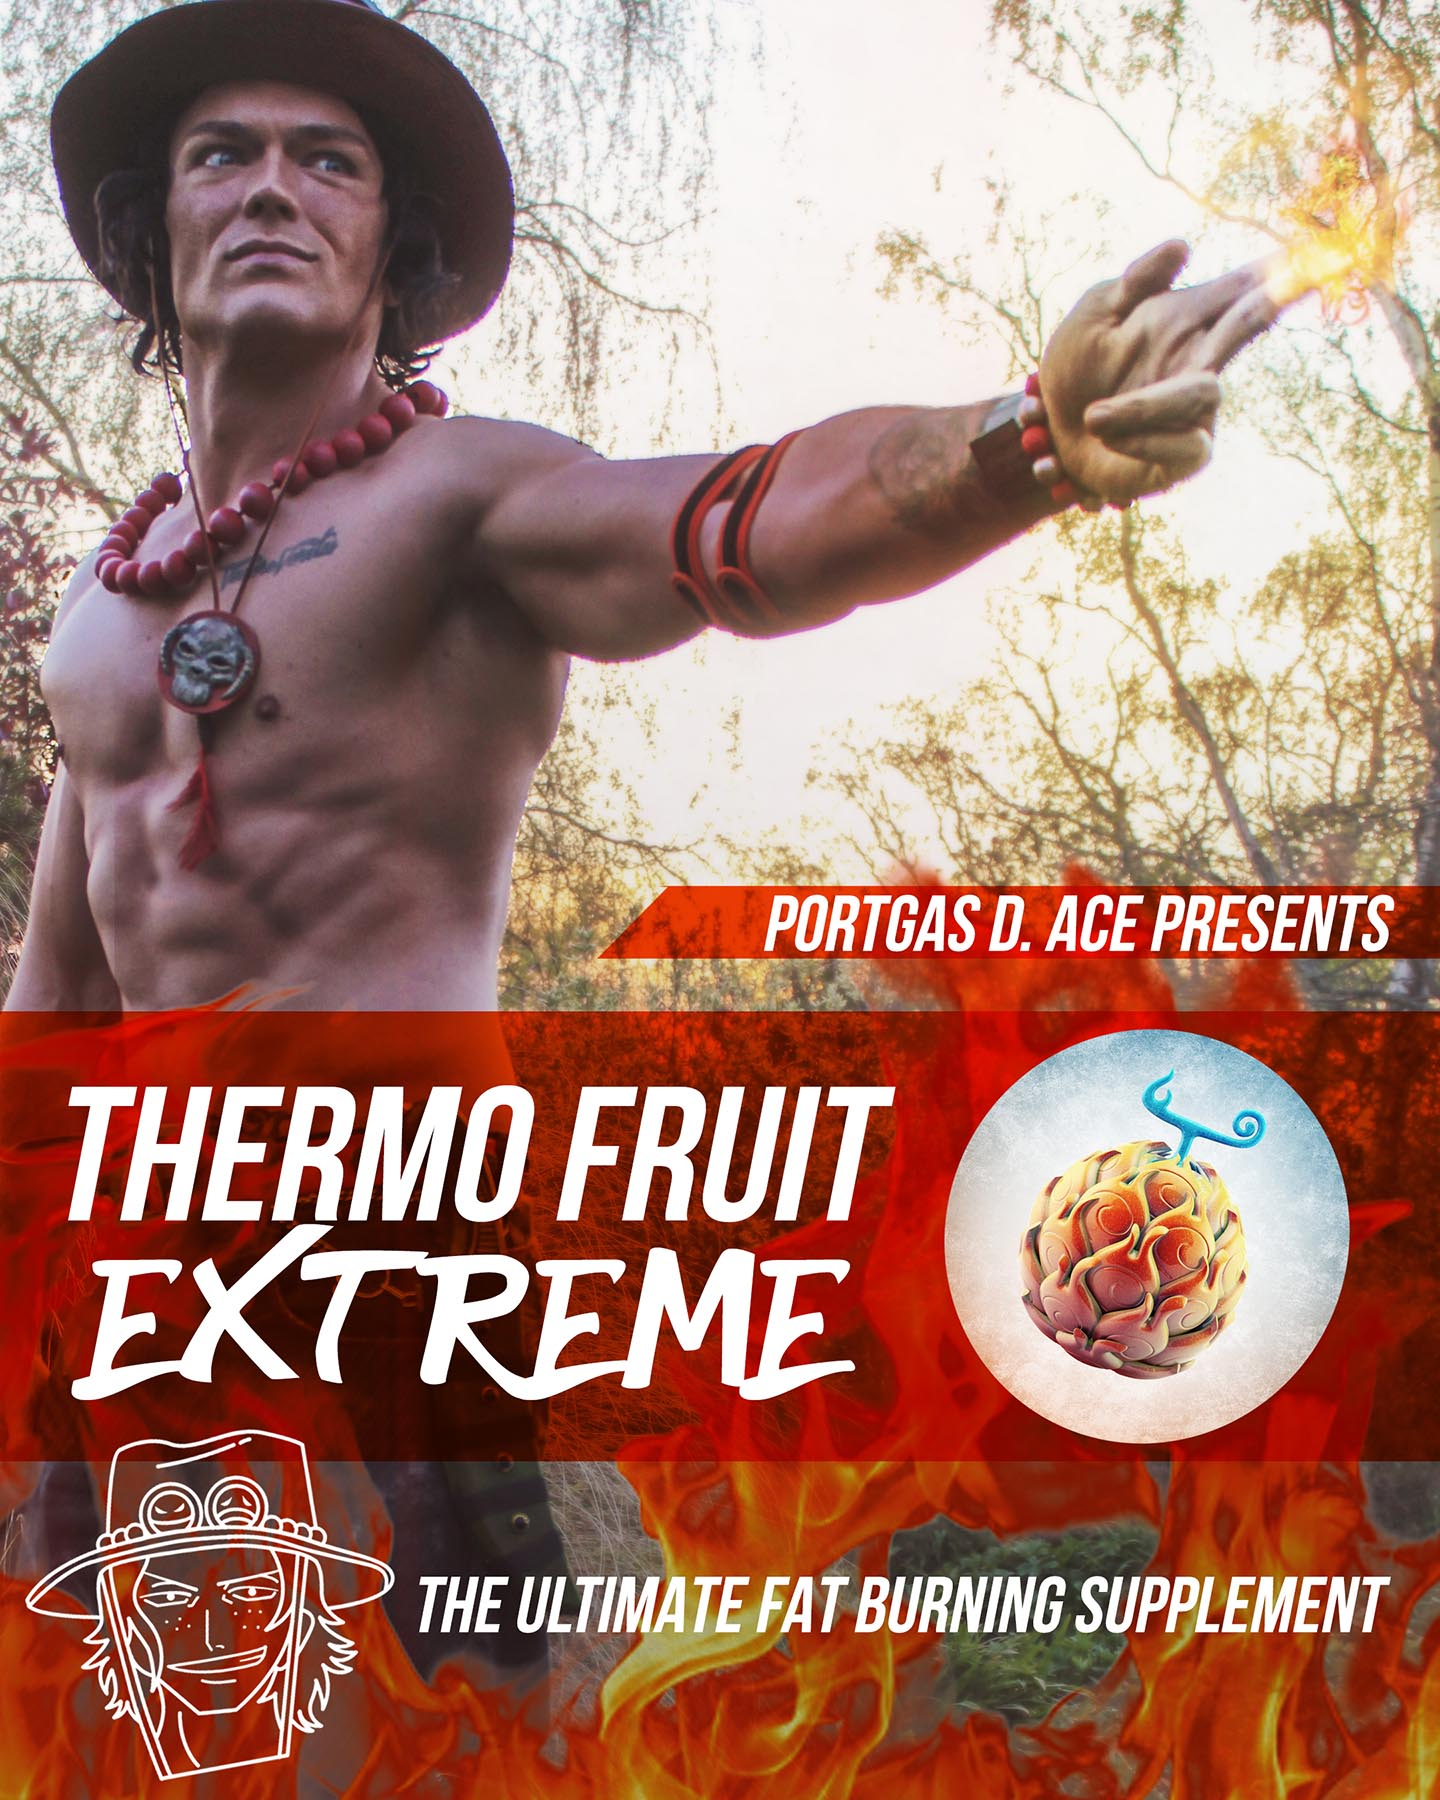 Firefist ace fat burning supplement from one piece using his devil fruit